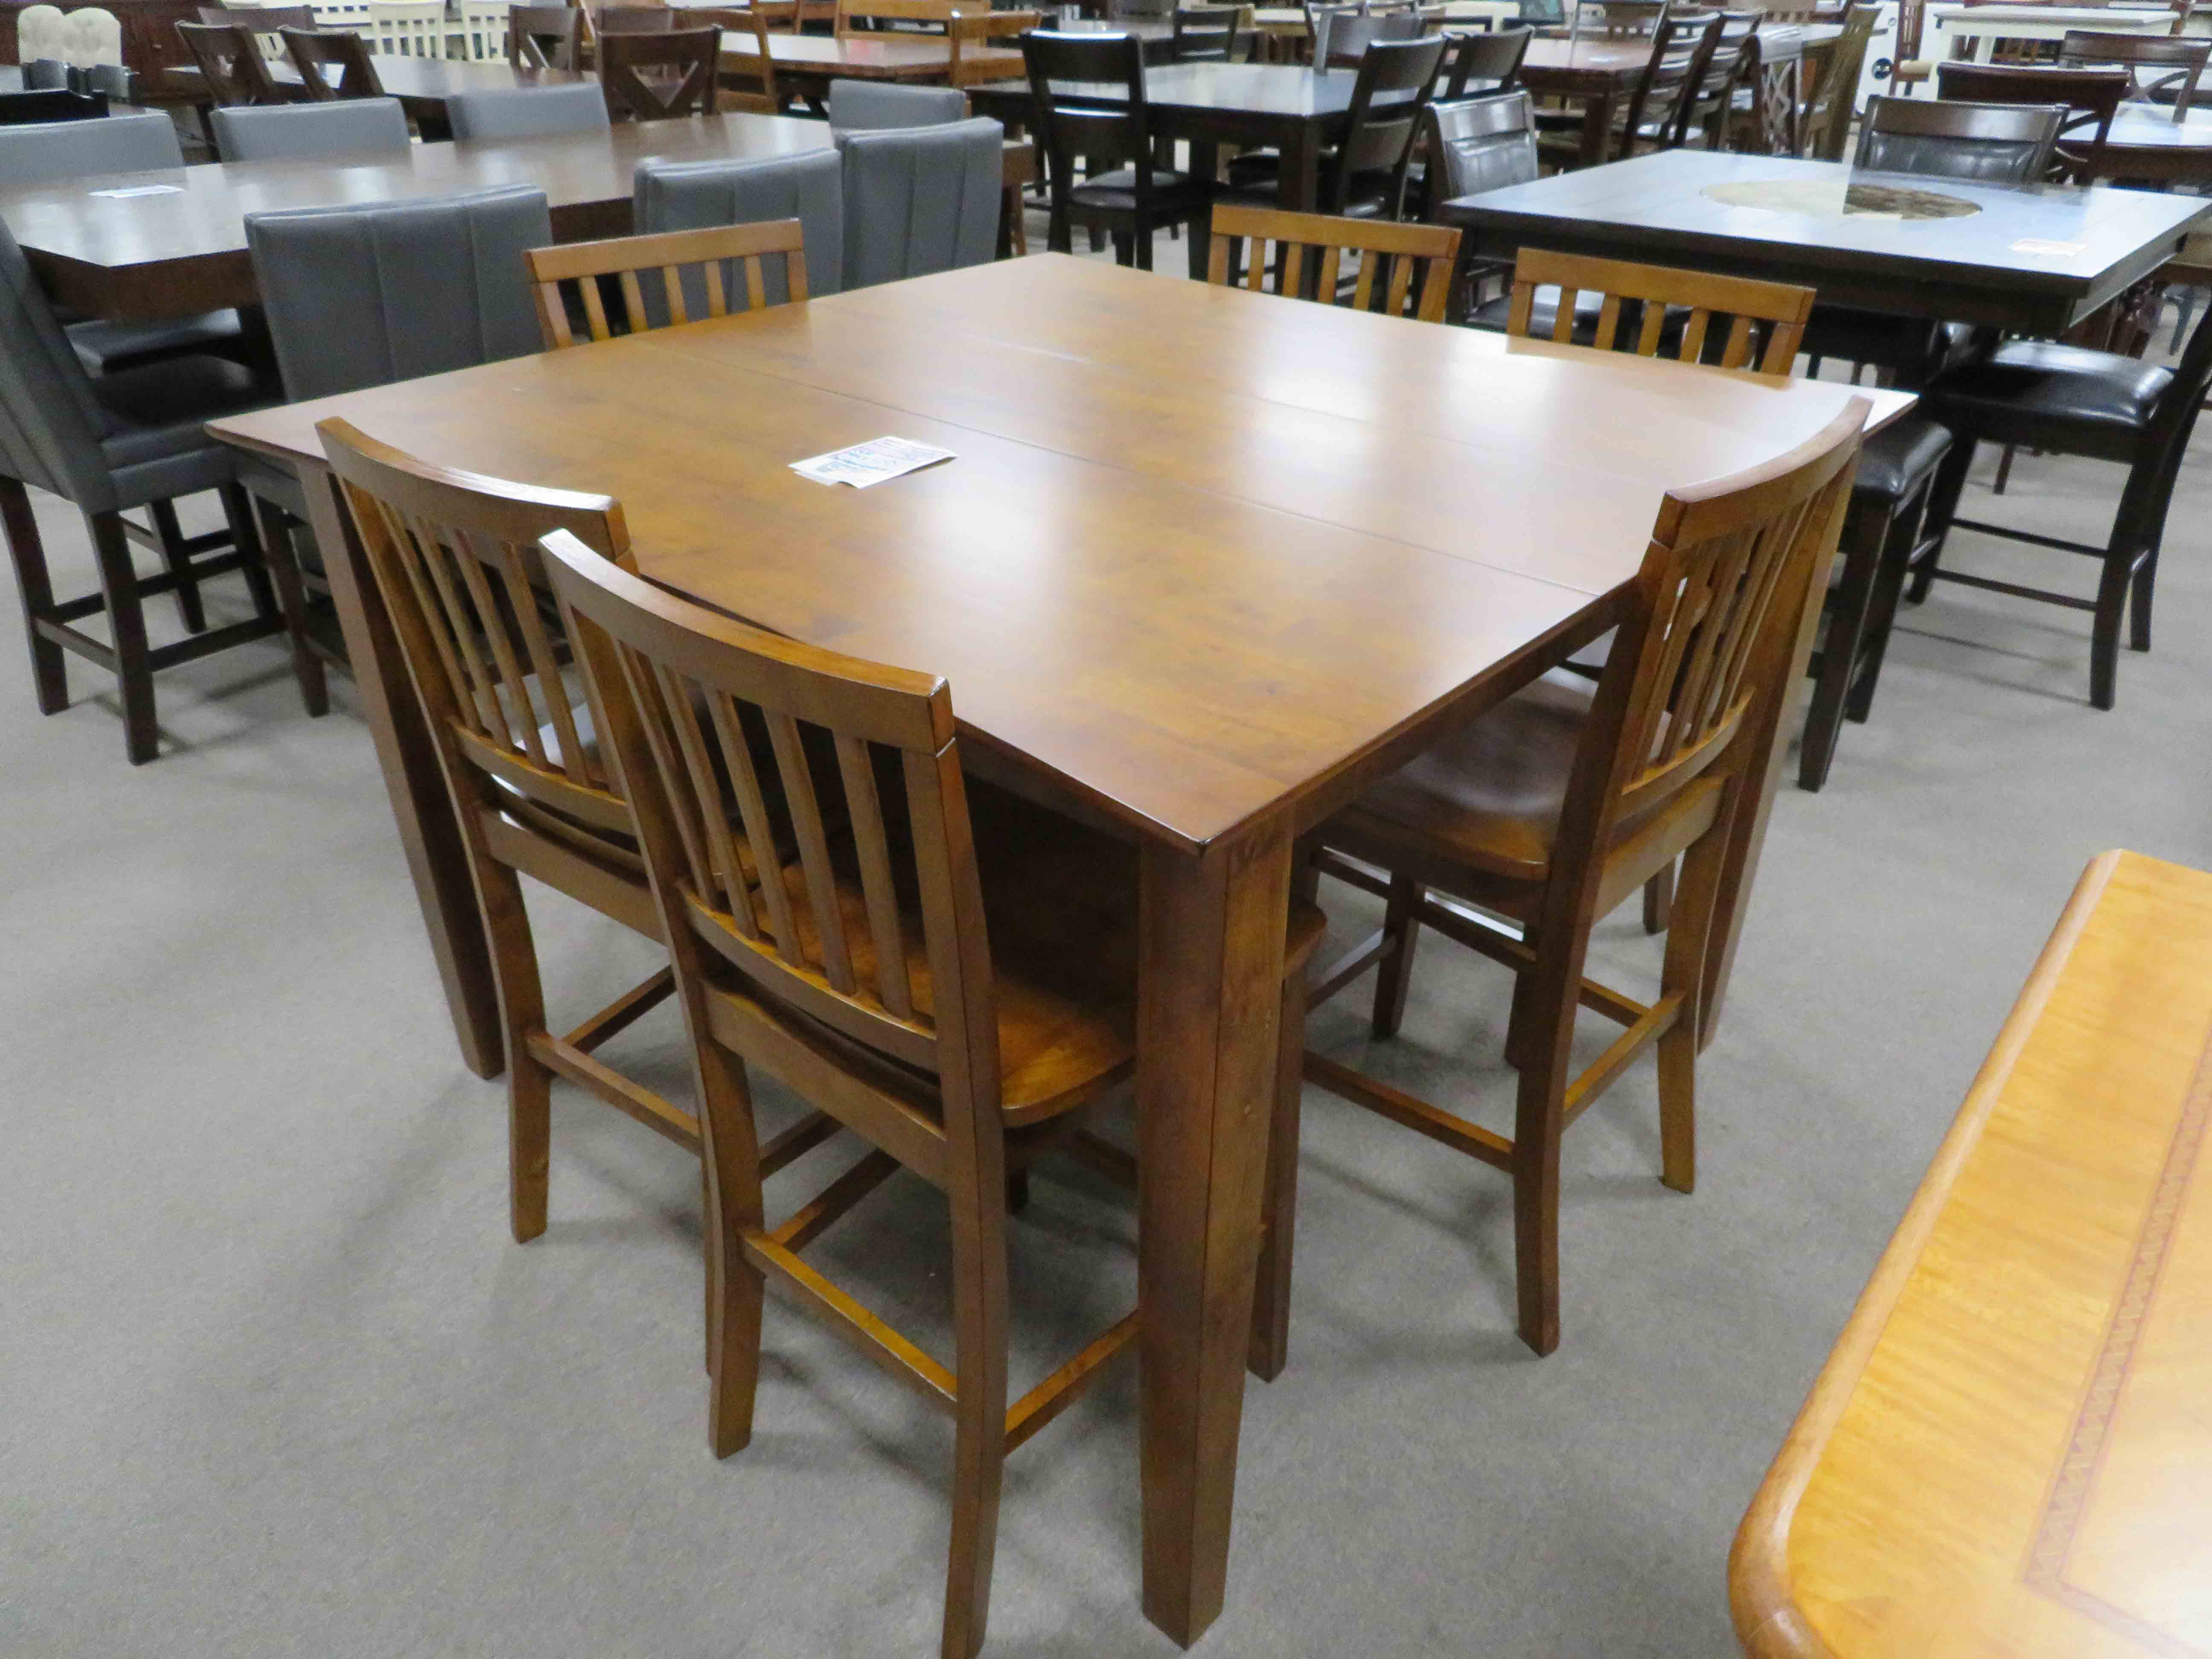 Dining Room Furniture Raleigh, NC | Smithfield | Tables, Chairs ...